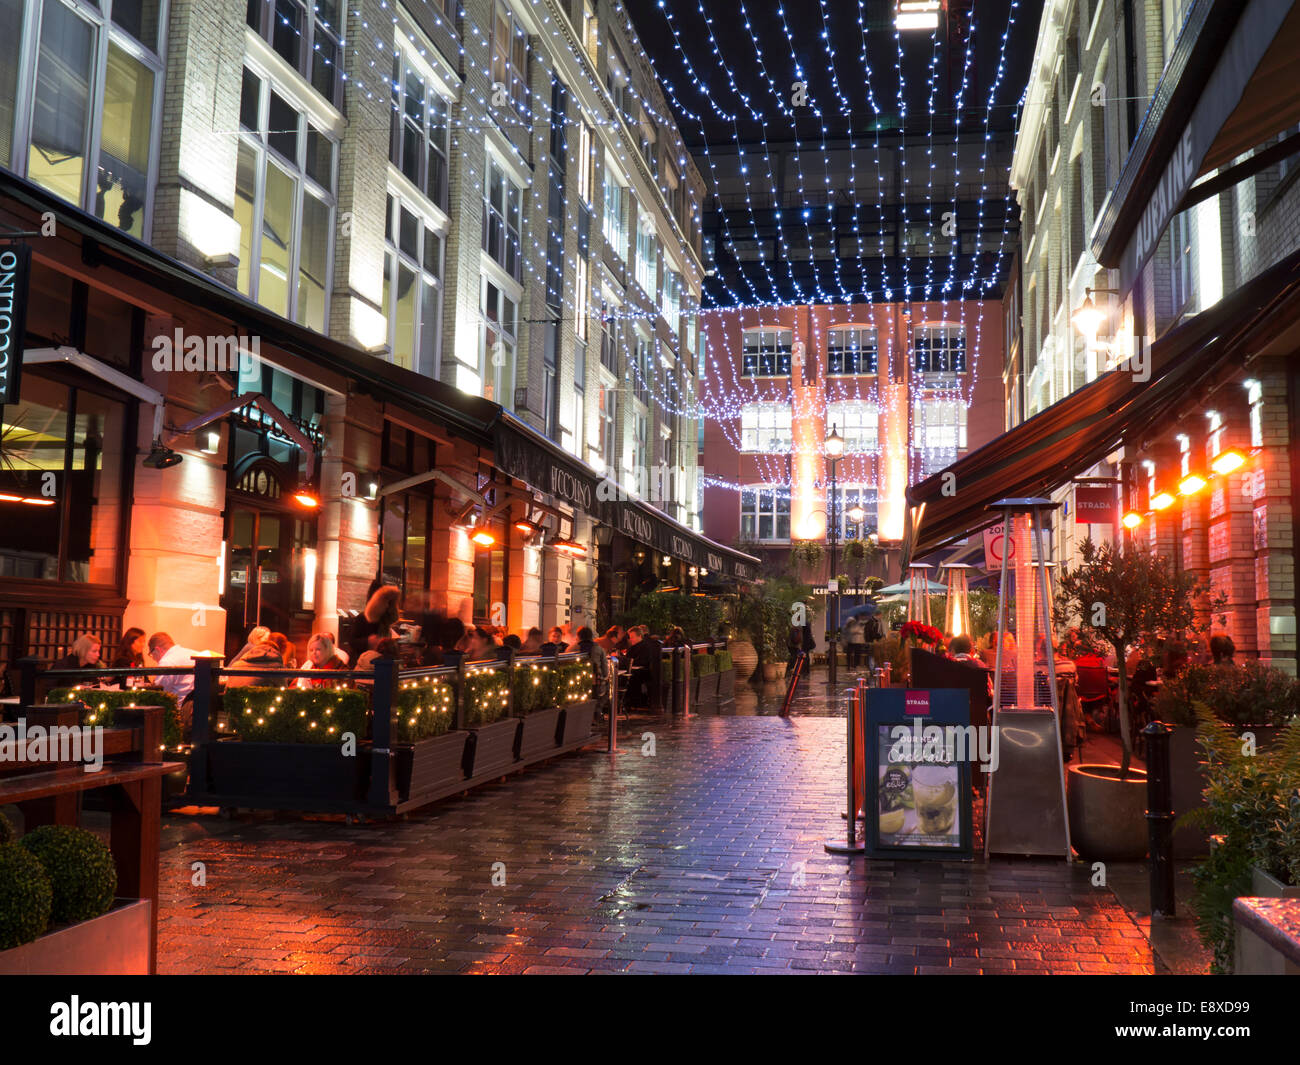 UK, England, London, Regent Street Heddon Street   Stock Image